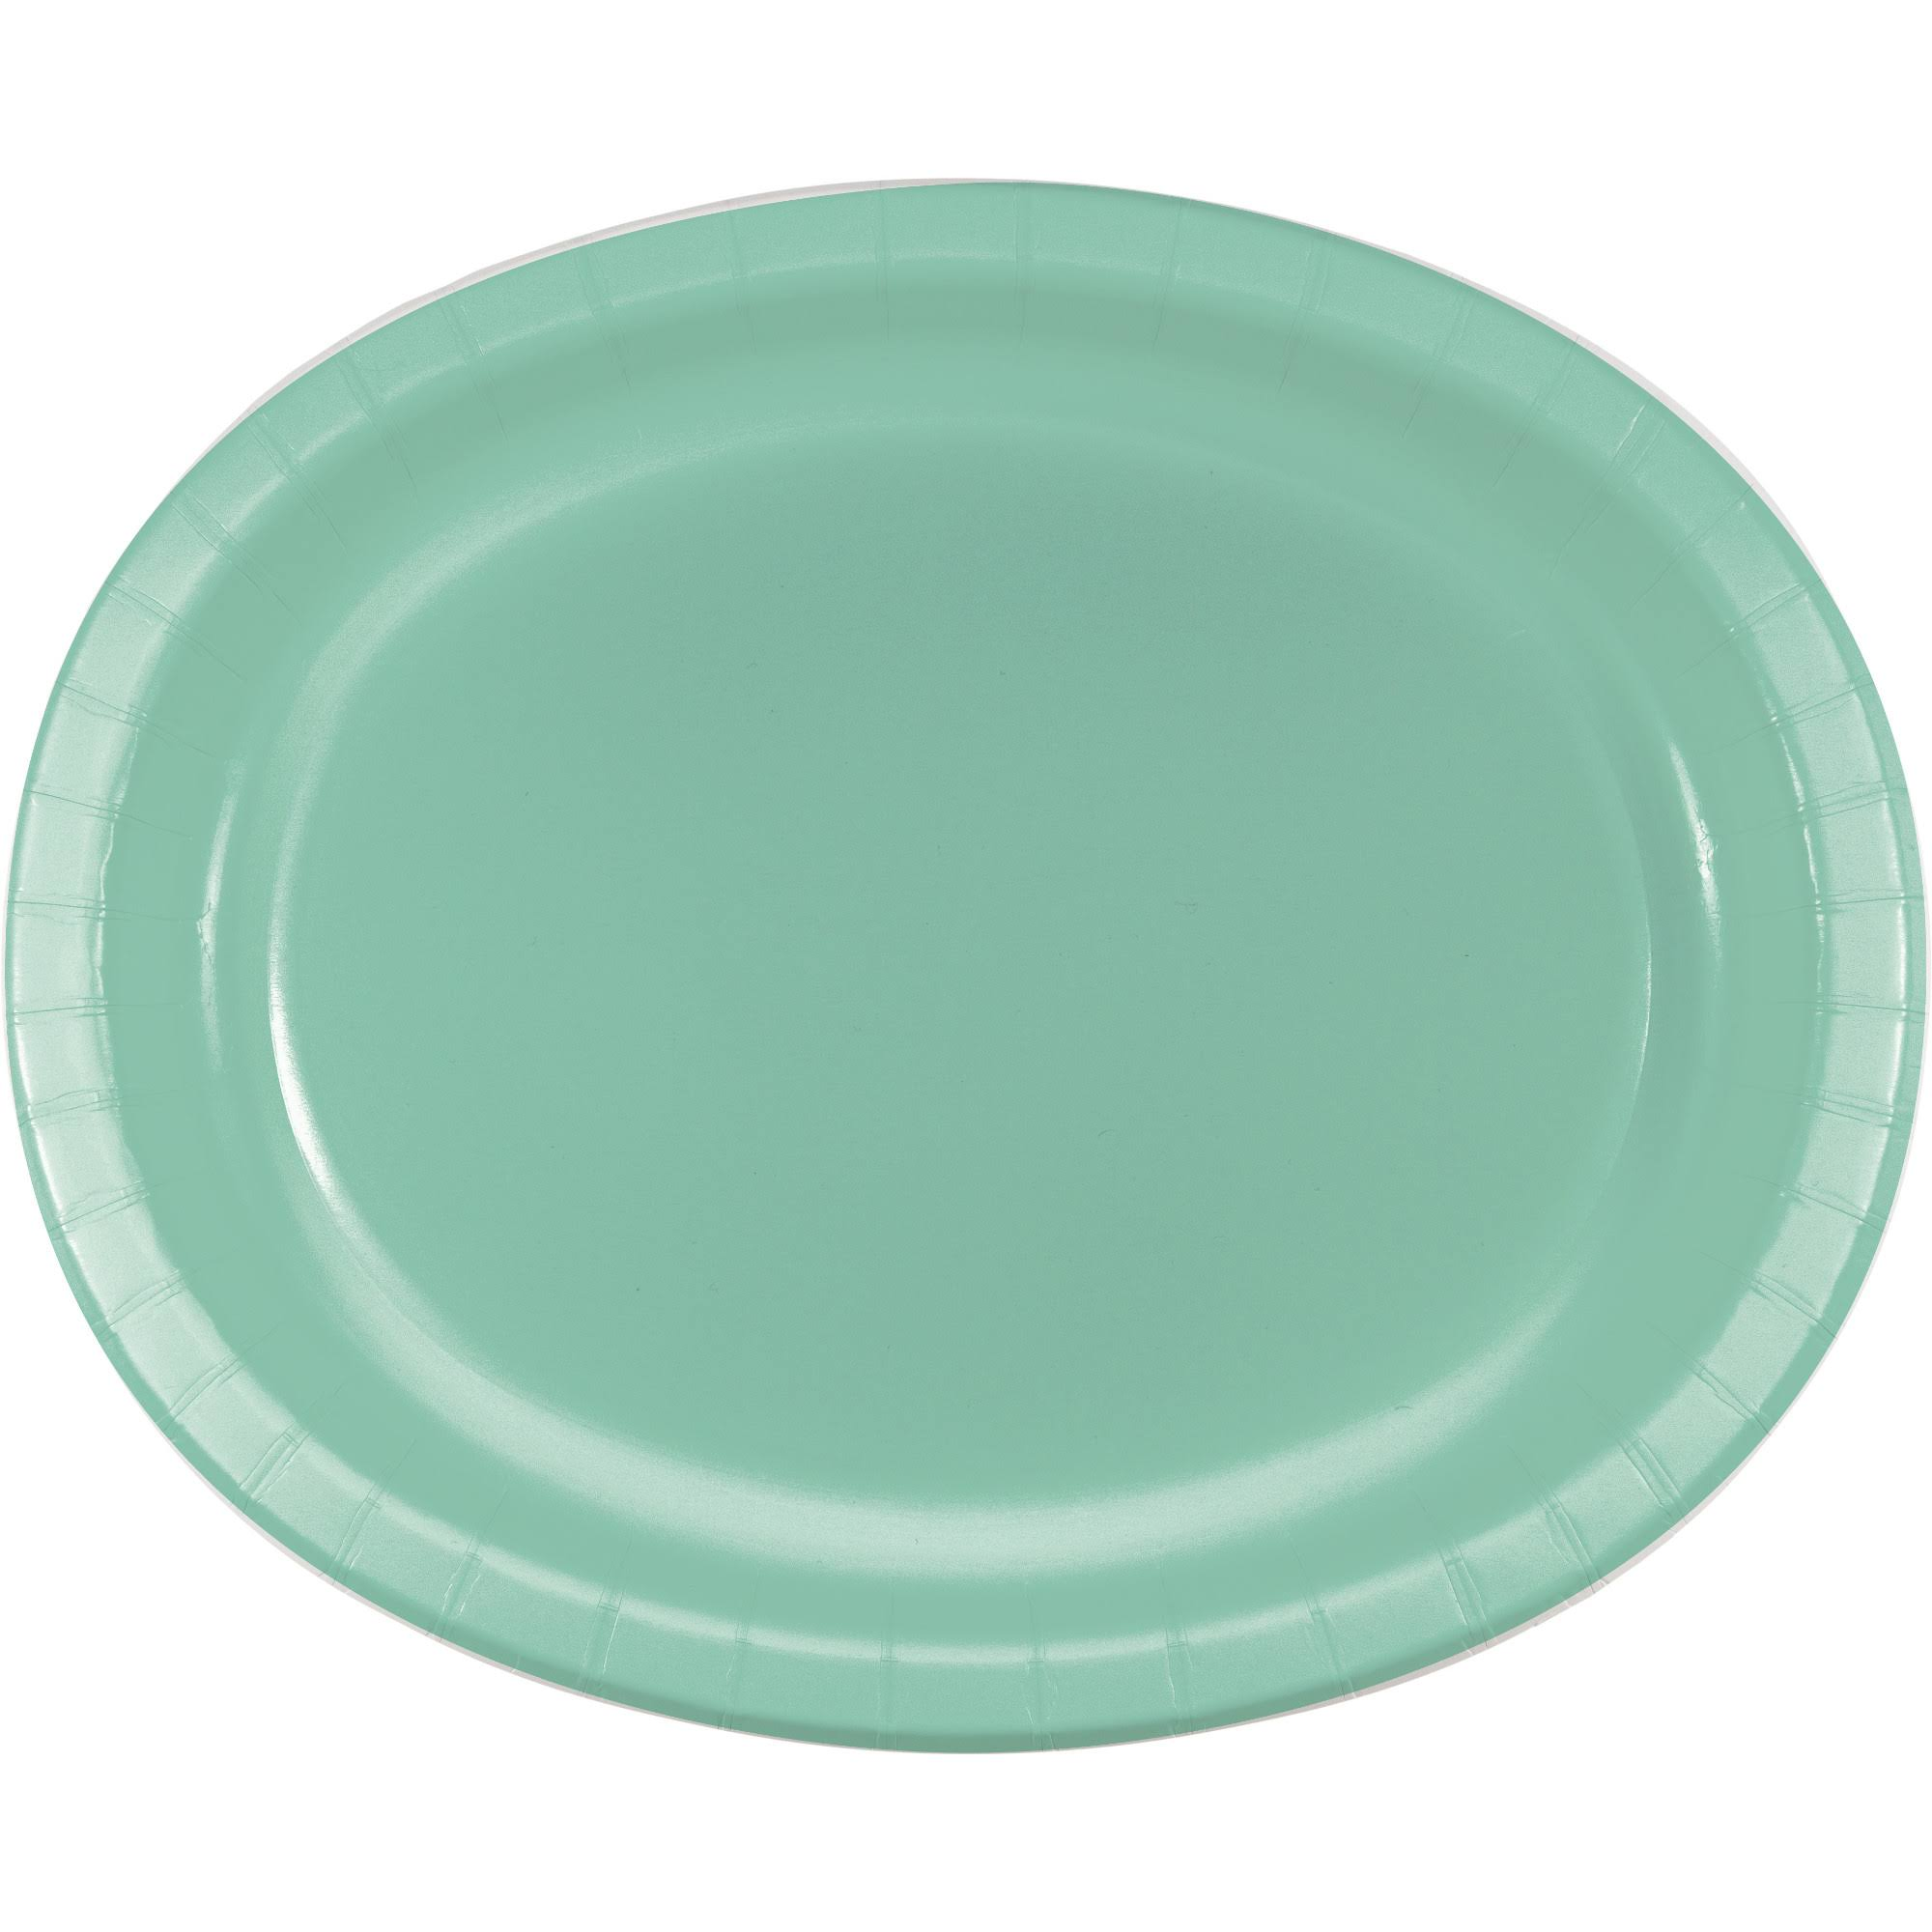 "Creative Converting 318885 12"" x 10"" Fresh Mint Green Oval Paper Platter - 8/Pack"